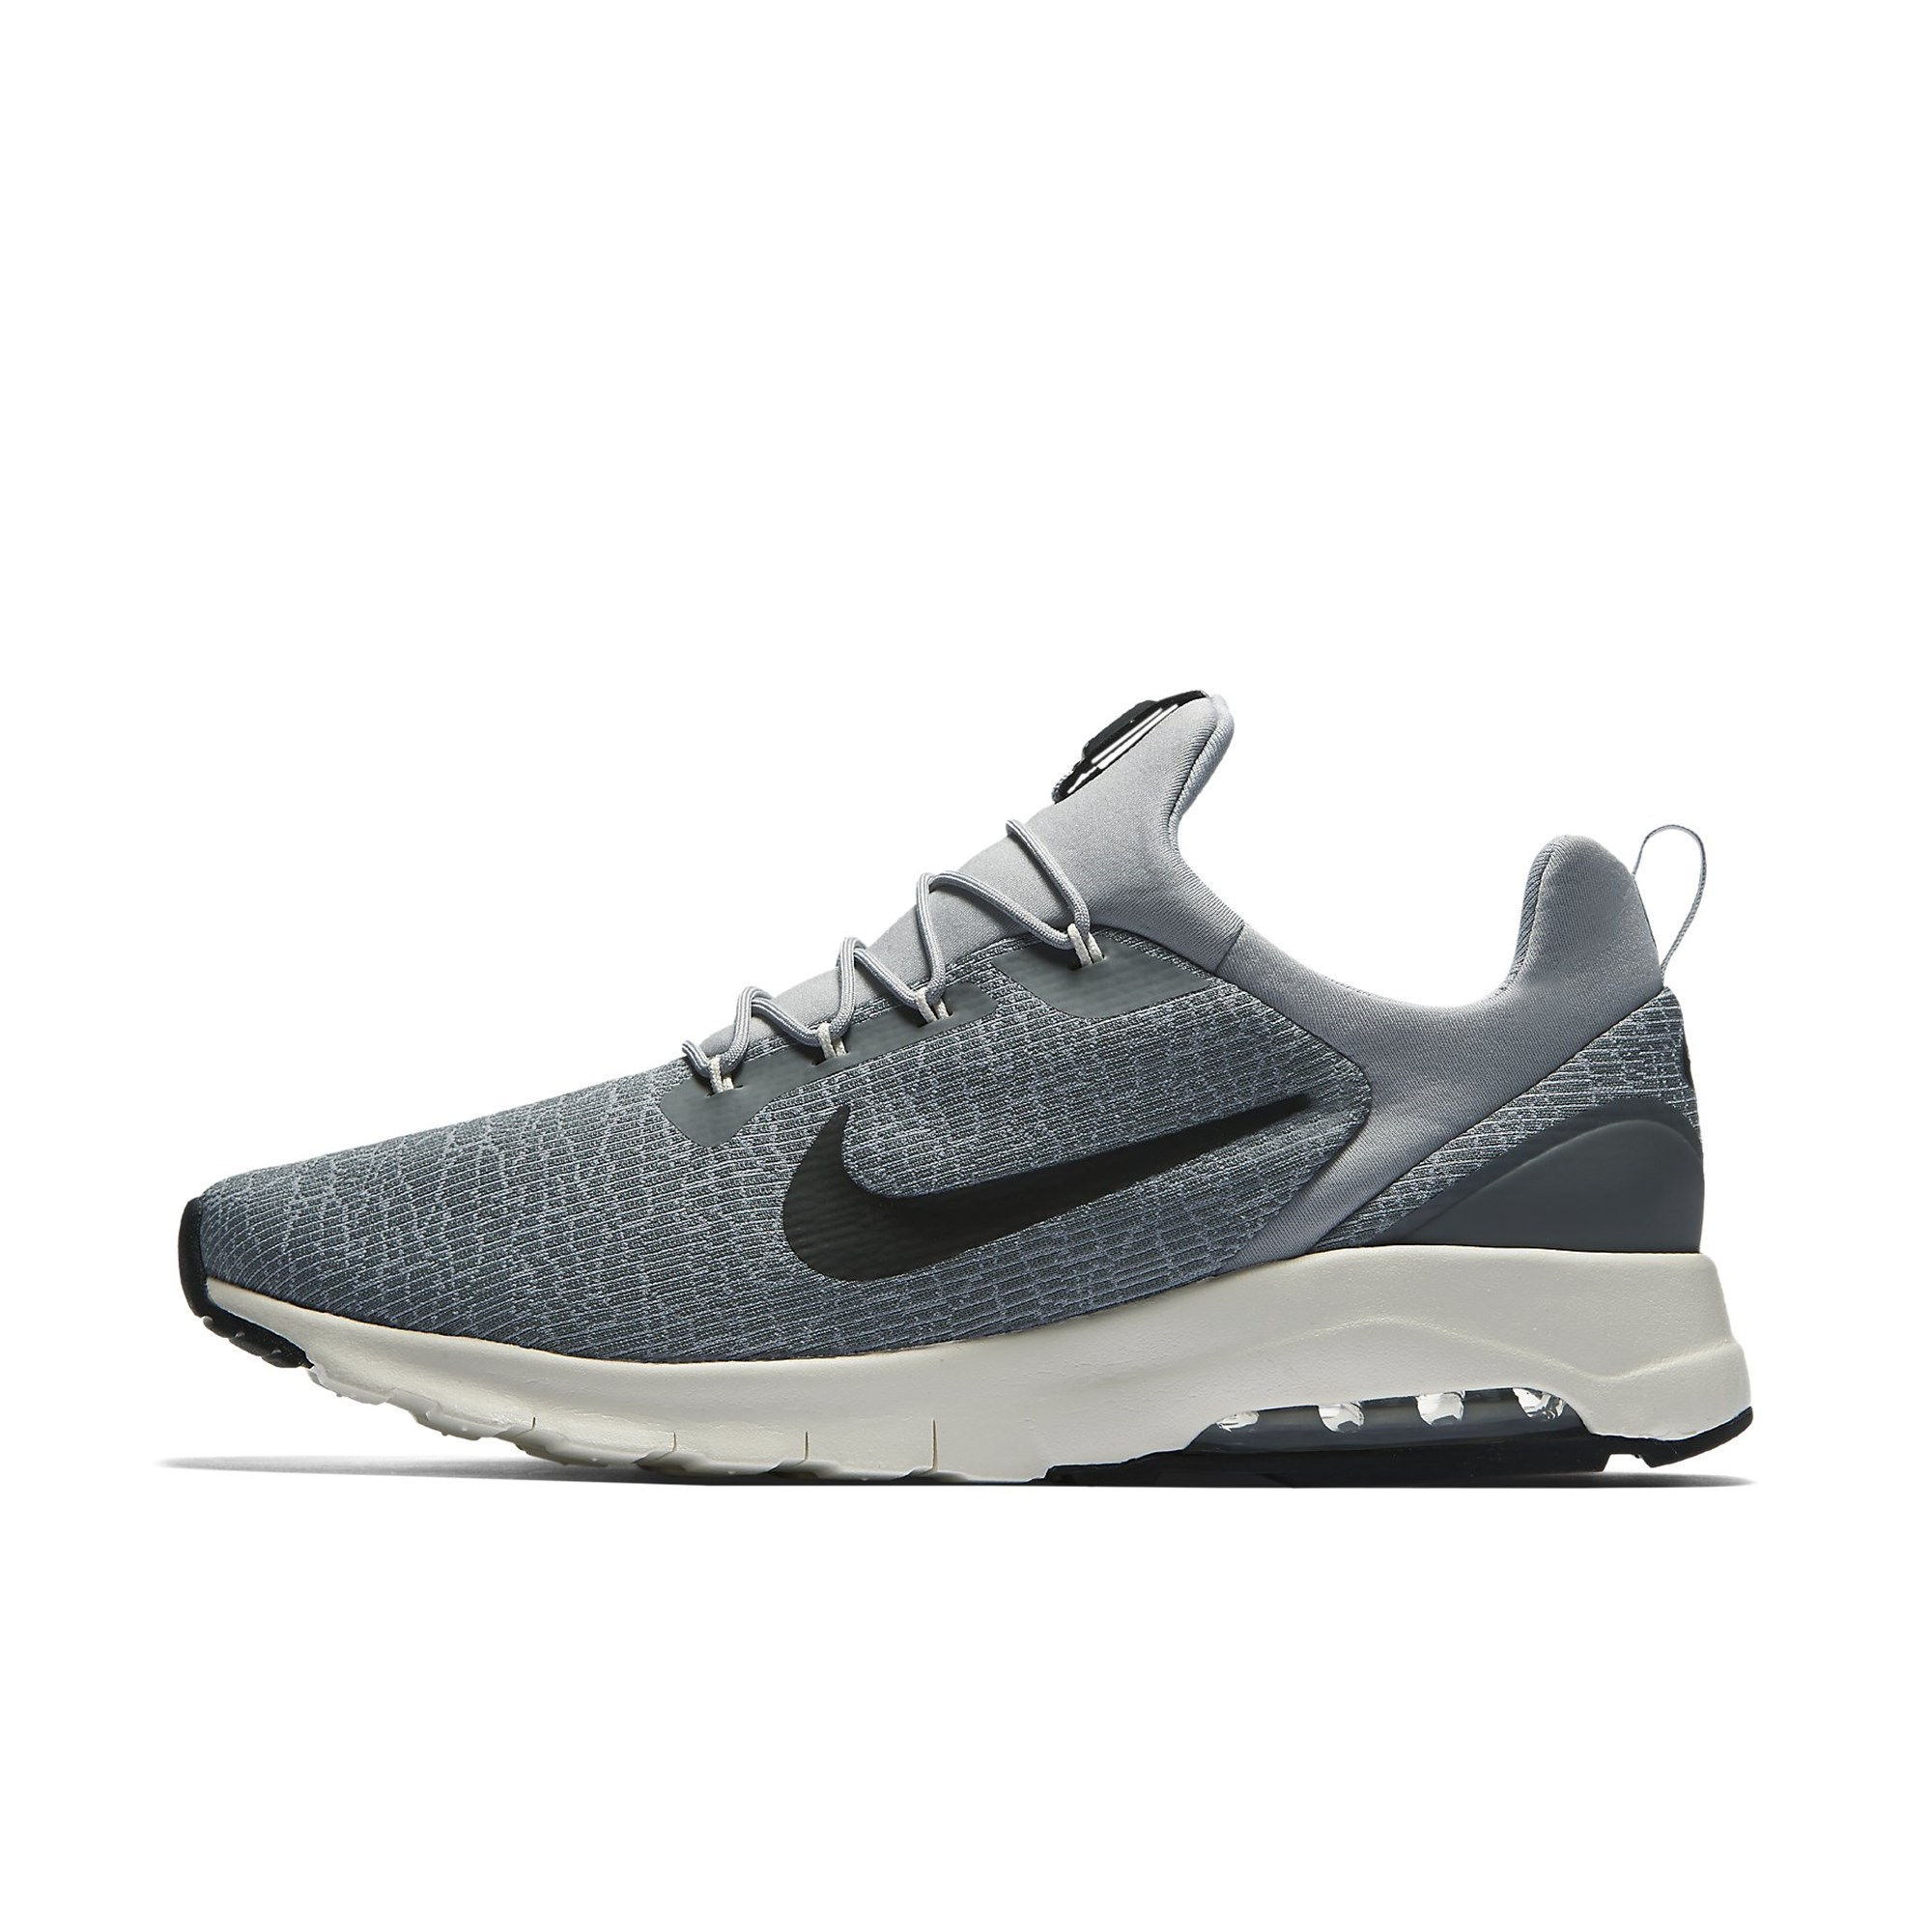 new style 51ca3 397a6 ... official store nike air max motion fiyat eb0e3 9131c ...